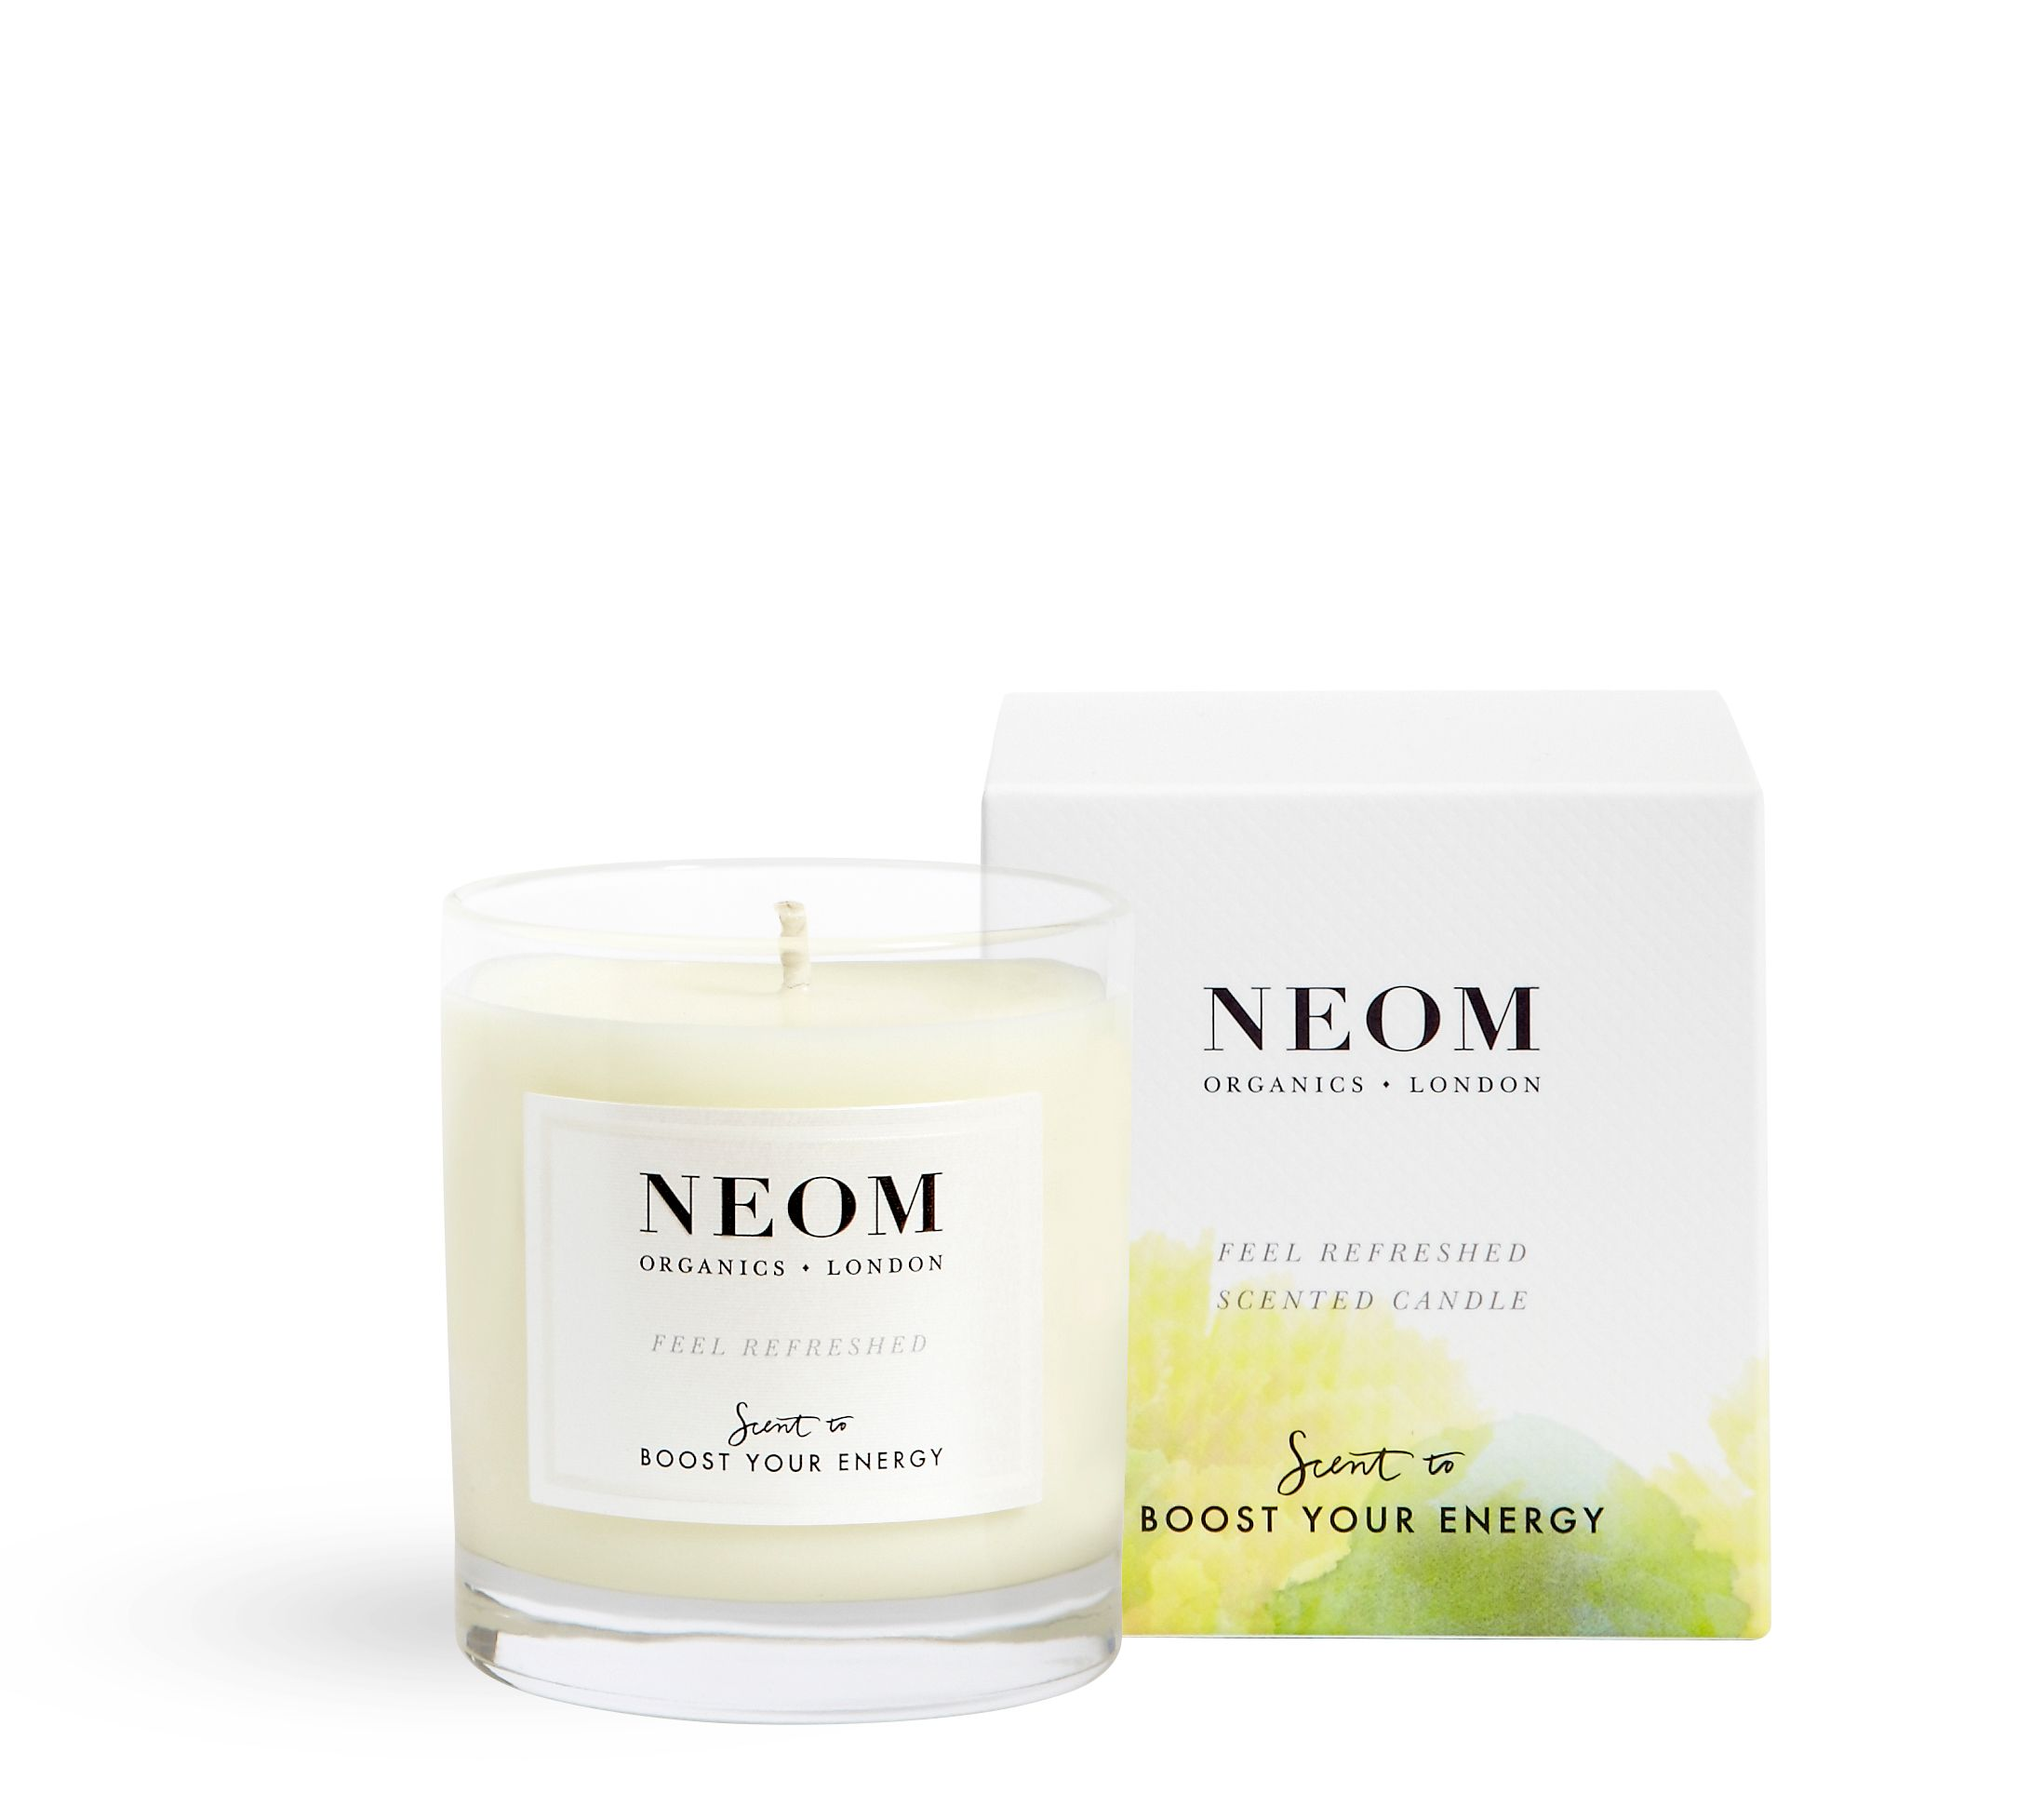 Image of Neom Feel Refreshed Scented Candle 1 Wick 185g